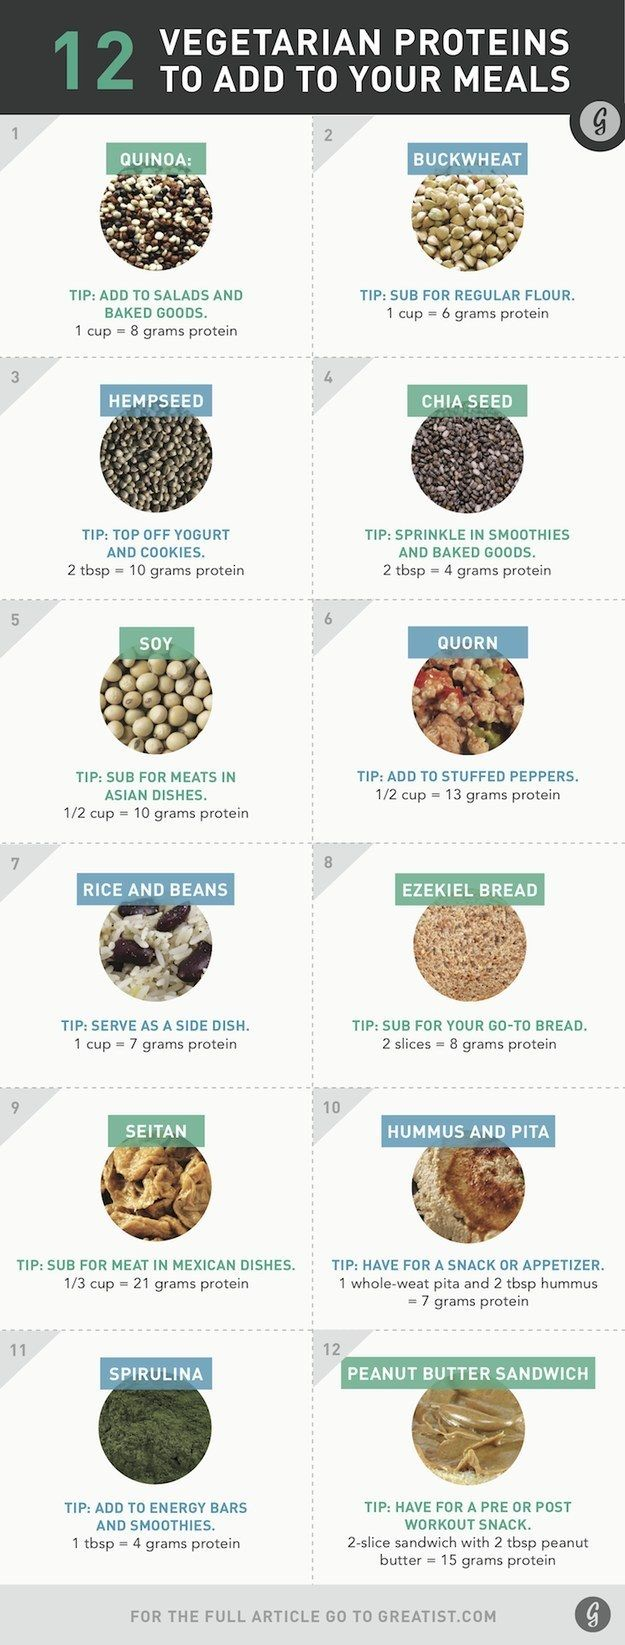 For vegetarians/vegans who want some more protein #vegan #protein